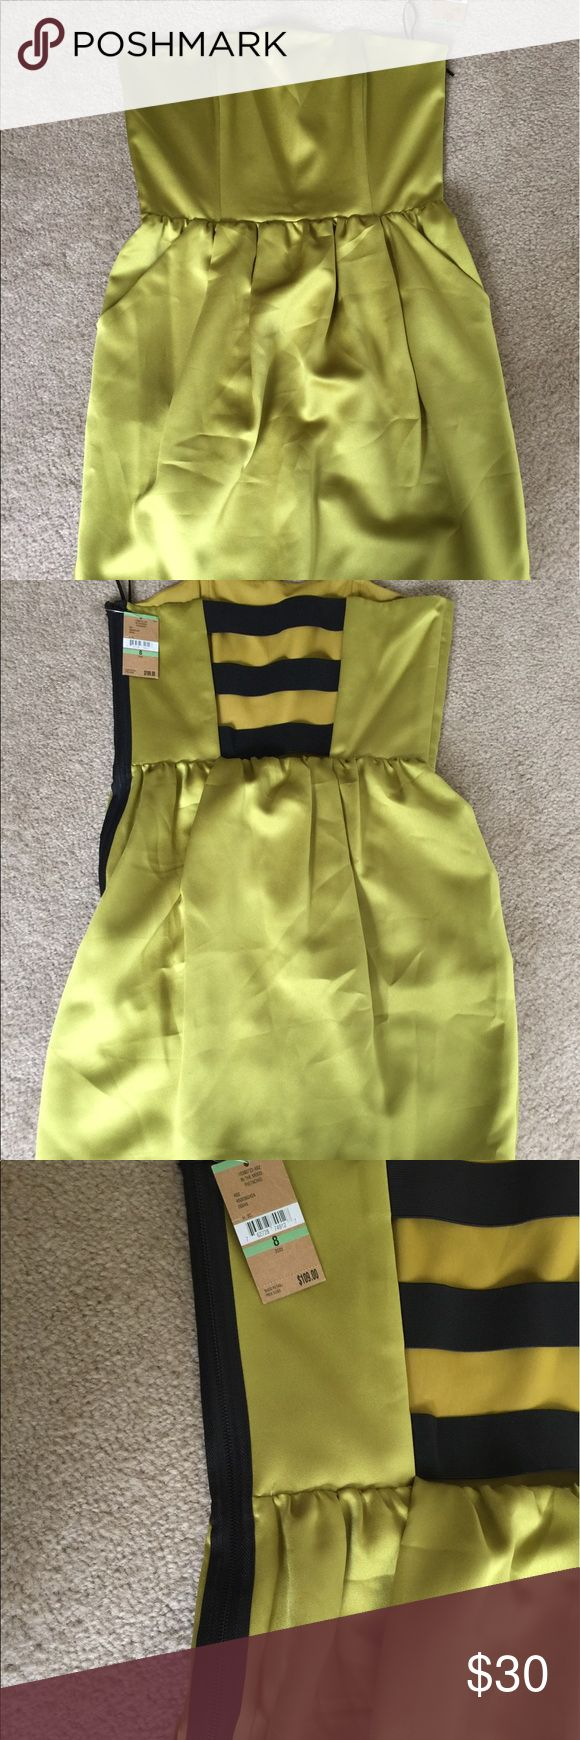 RACHEL ROY  DRESS PRICE REDUCTION 💃💃💃💃 NWT RACHEL ROY WOMENS DRESS SHORT STRAPLESS  IN THE MOOD PISTACHIO STRAP BACK in size 8. RACHEL Rachel Roy Dresses Strapless